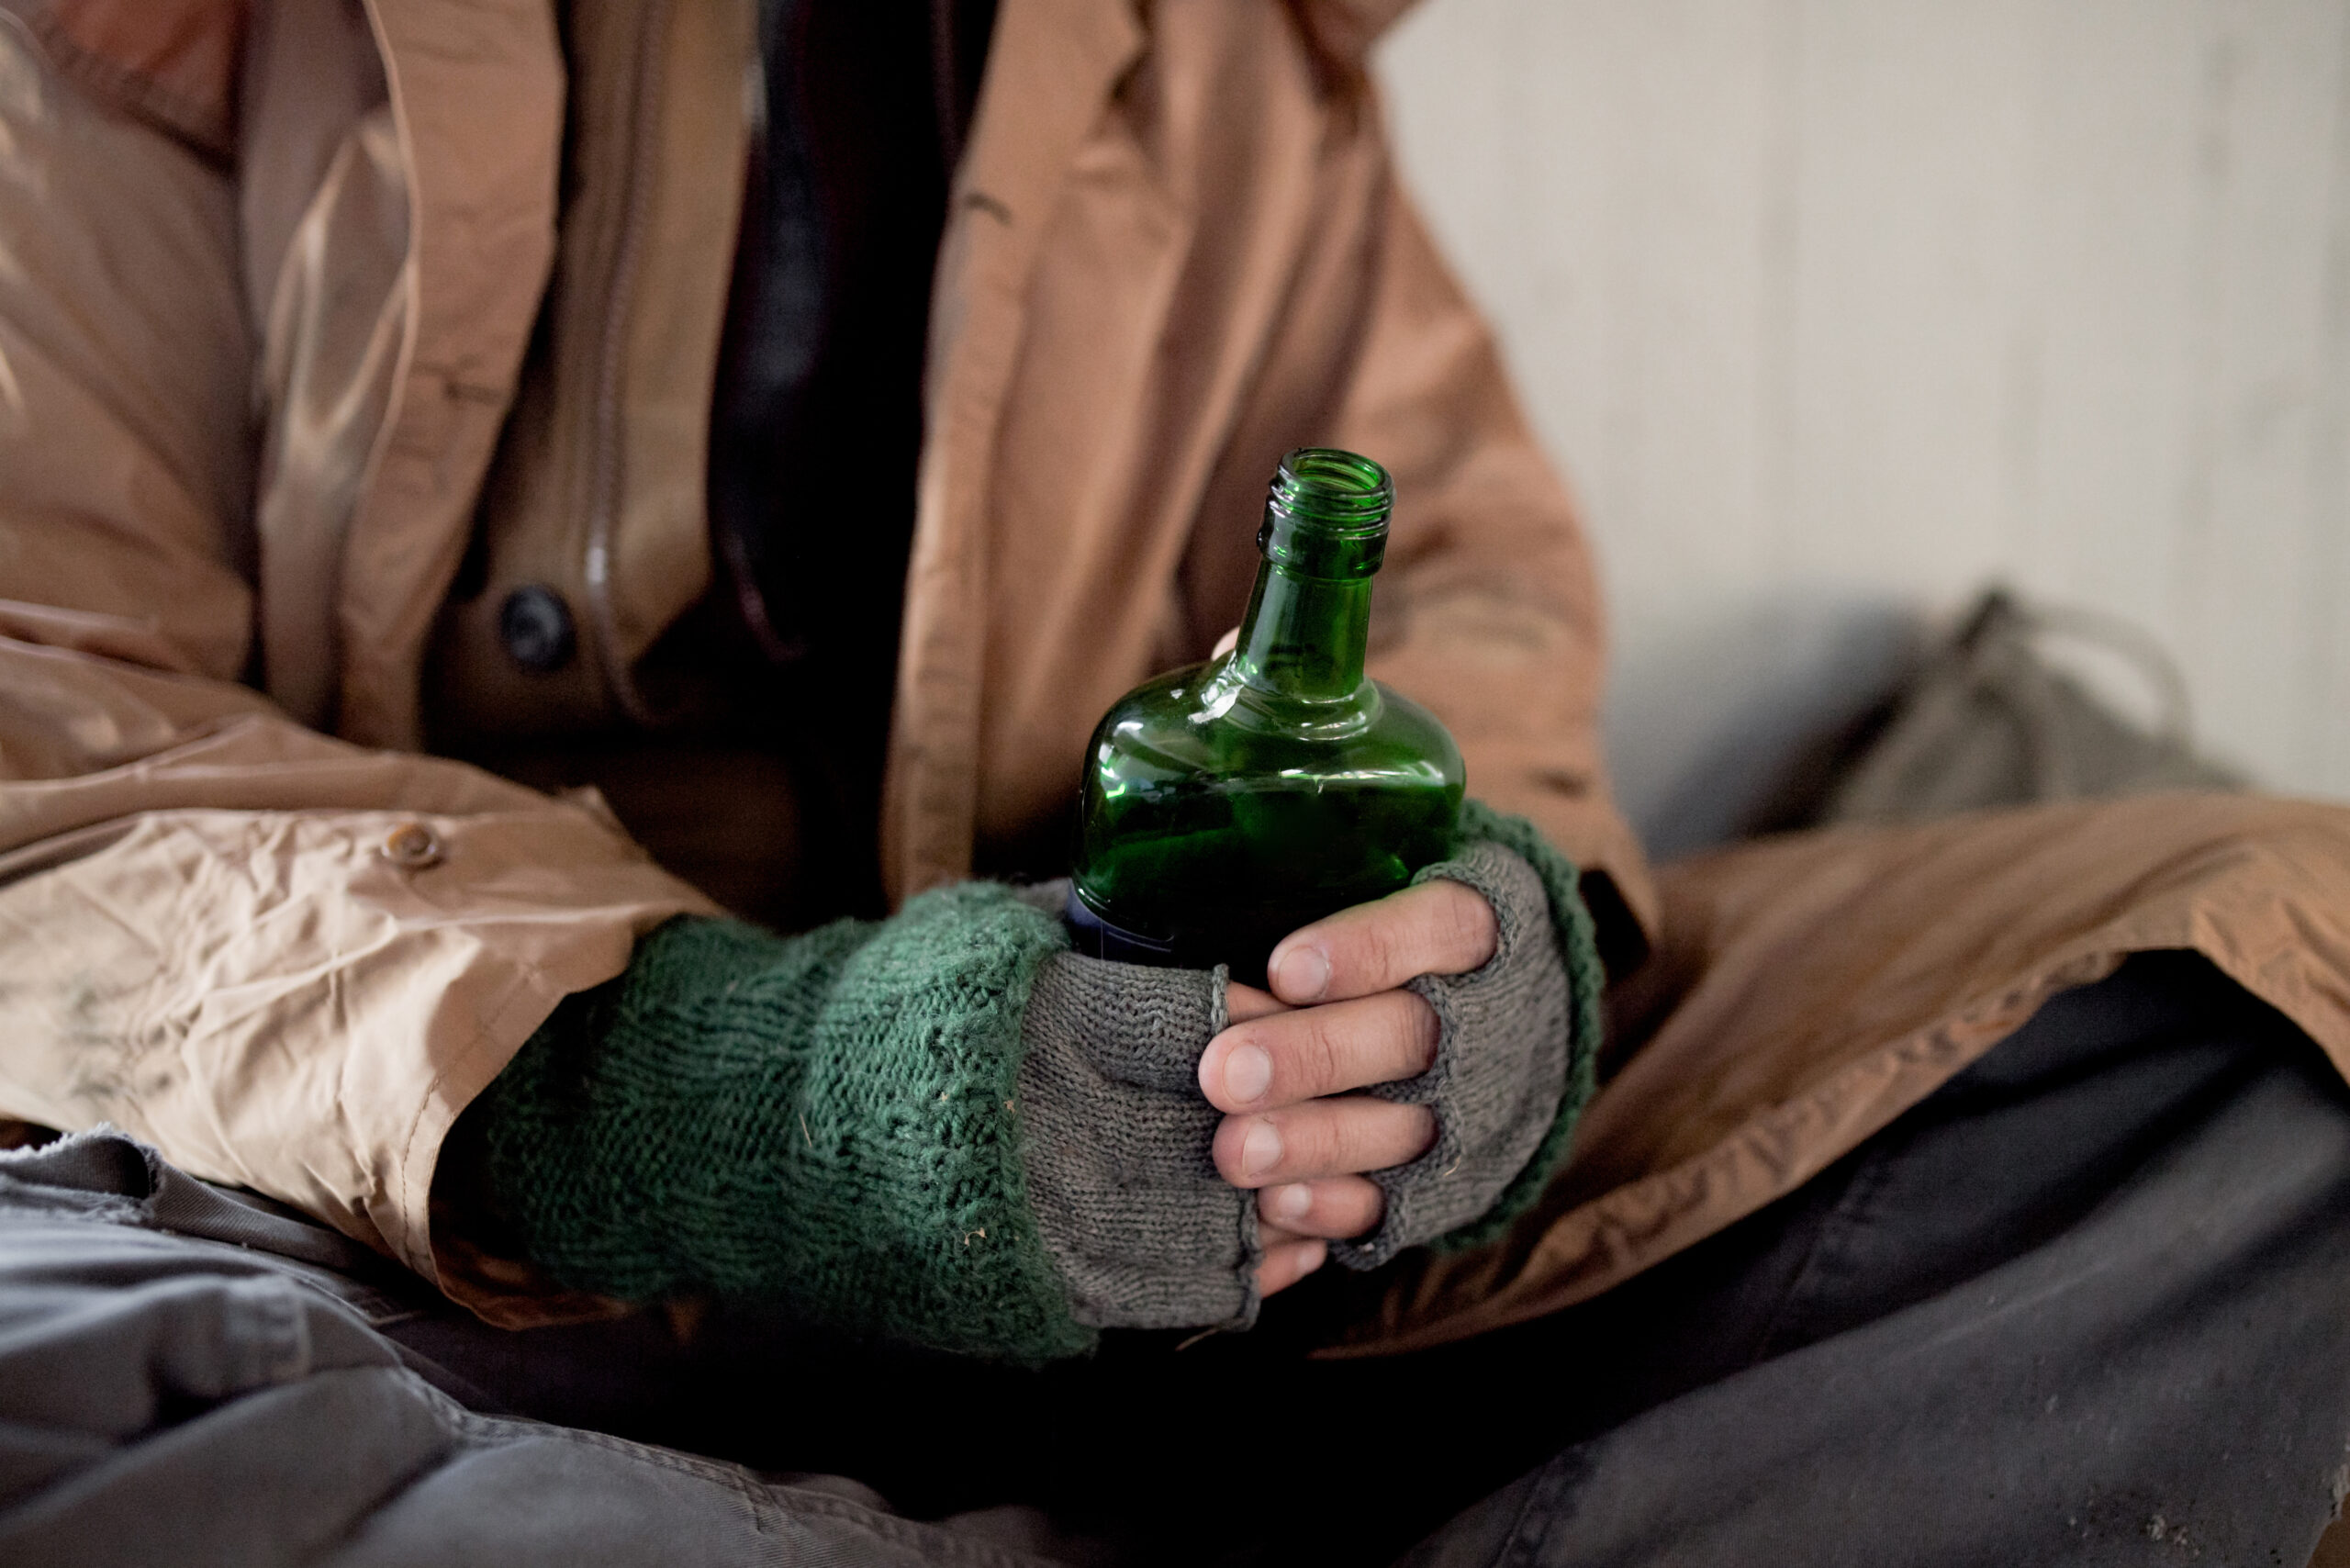 A midsection view of homeless man sitting outdoors in city asking for money donation, holding a bottle of alcohol.